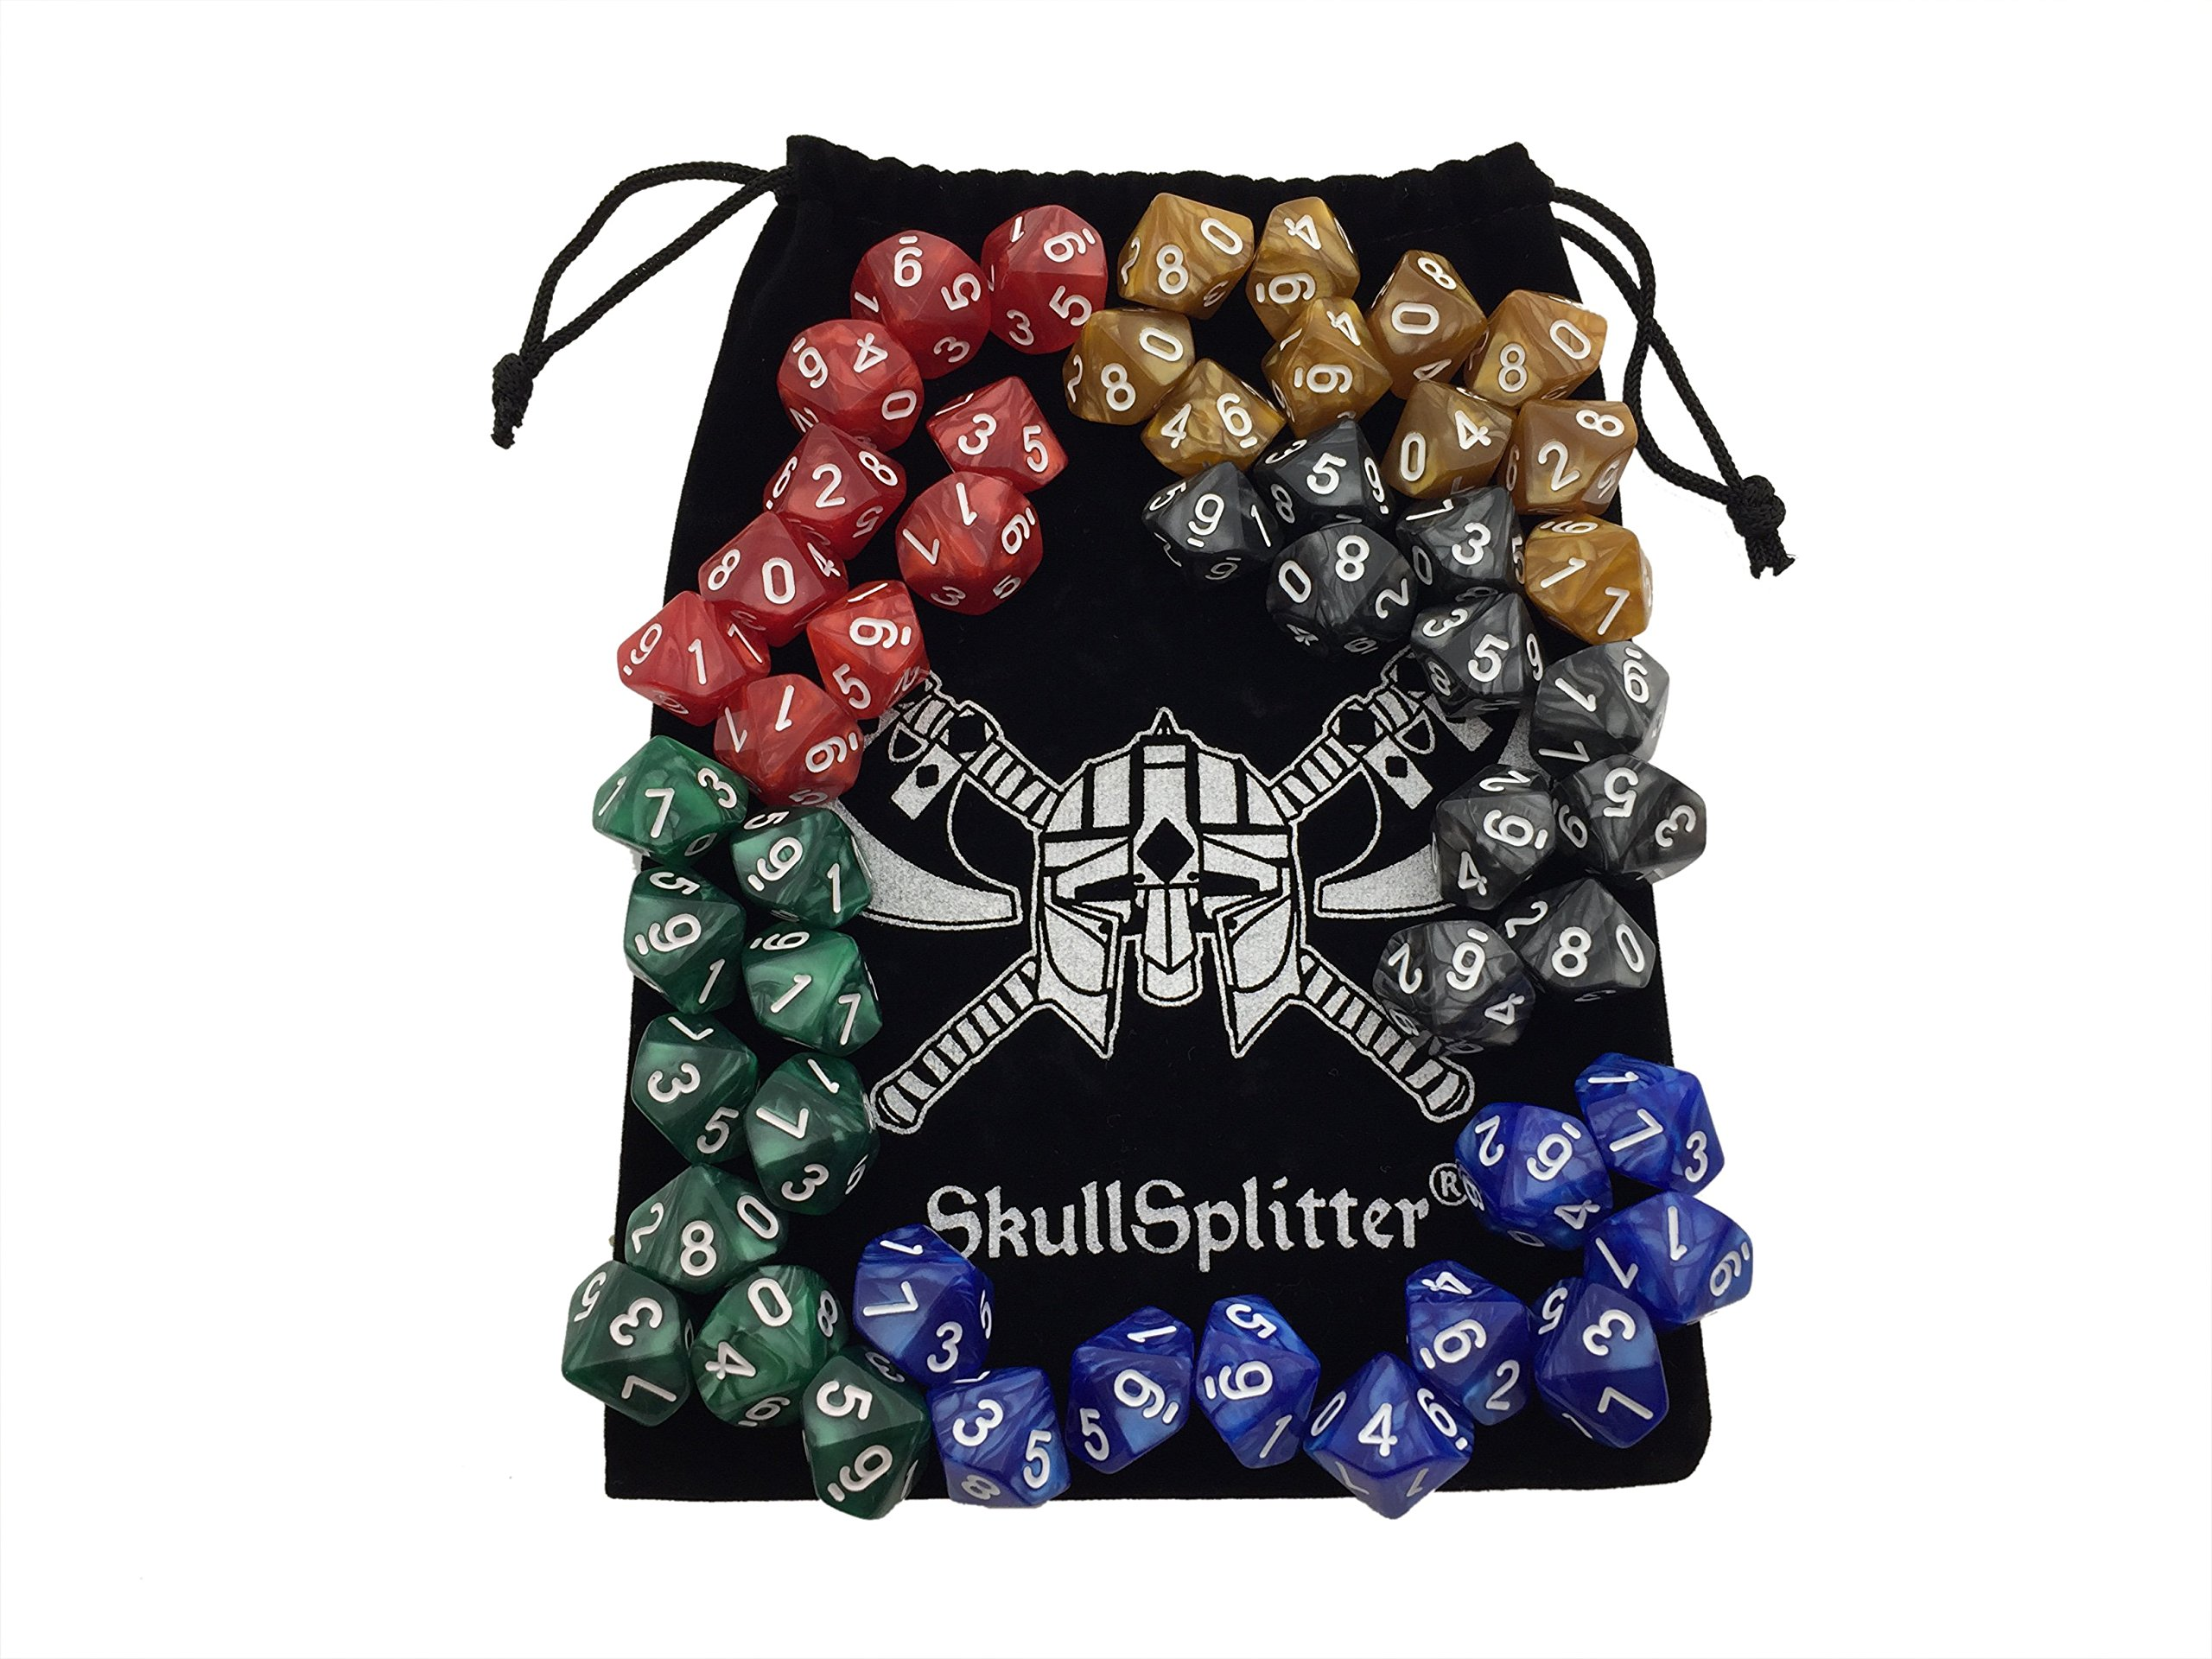 Skull Splitter Dice - D10 DICE Set-5 Sets of 10d10, Perfect for WOD or Math Dice Games - 10 Sided Polyhedral Dice Sets with Bag for Table Top RPG MTG by Skull Splitter Dice